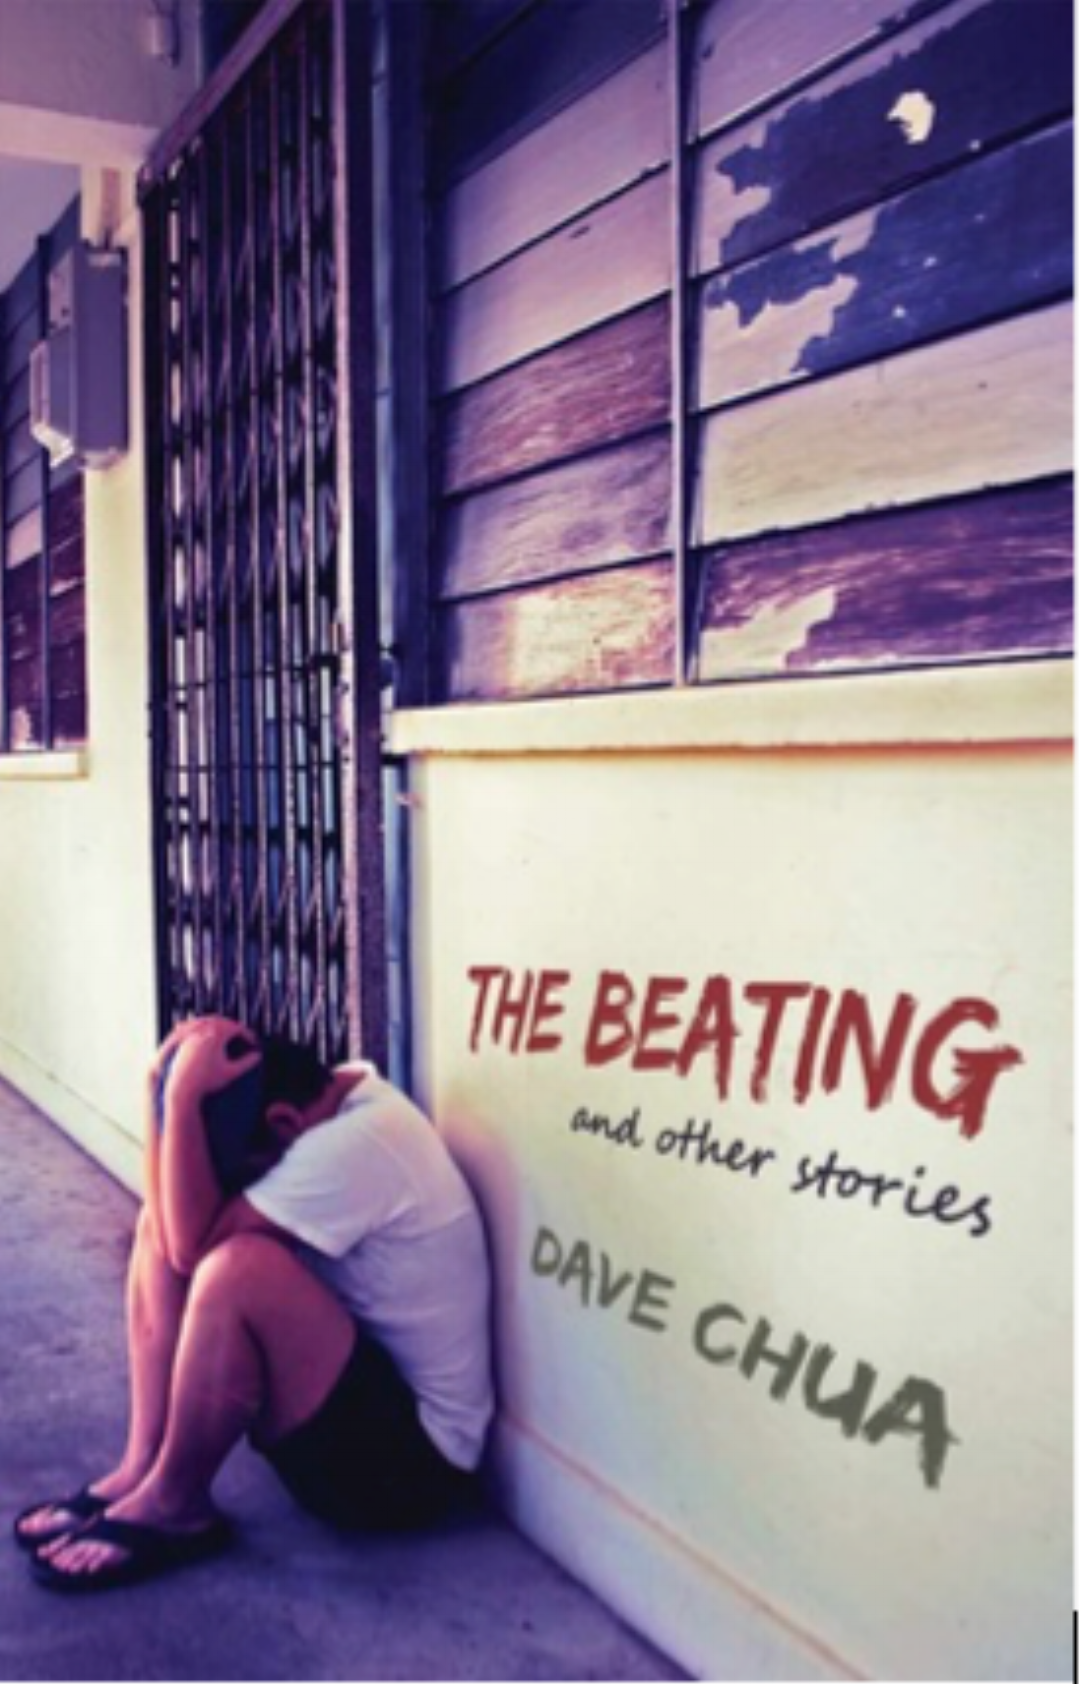 "Original story adapted from  Dave Chua  ""The Tiger of 142B"" from  The Beating and Other Stories"